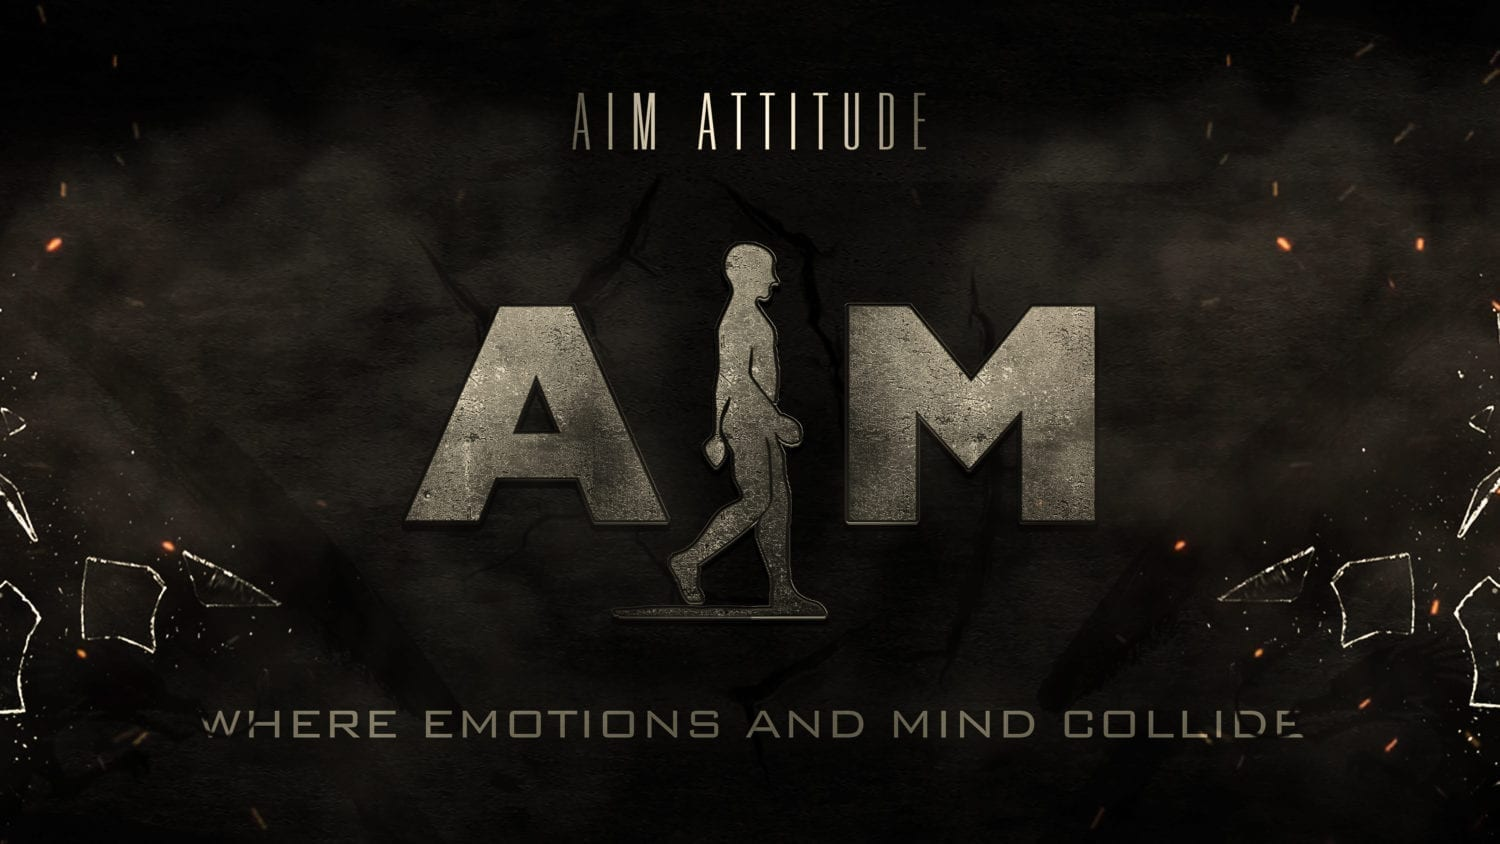 Where Emotions and Mind Collide_aim attitude